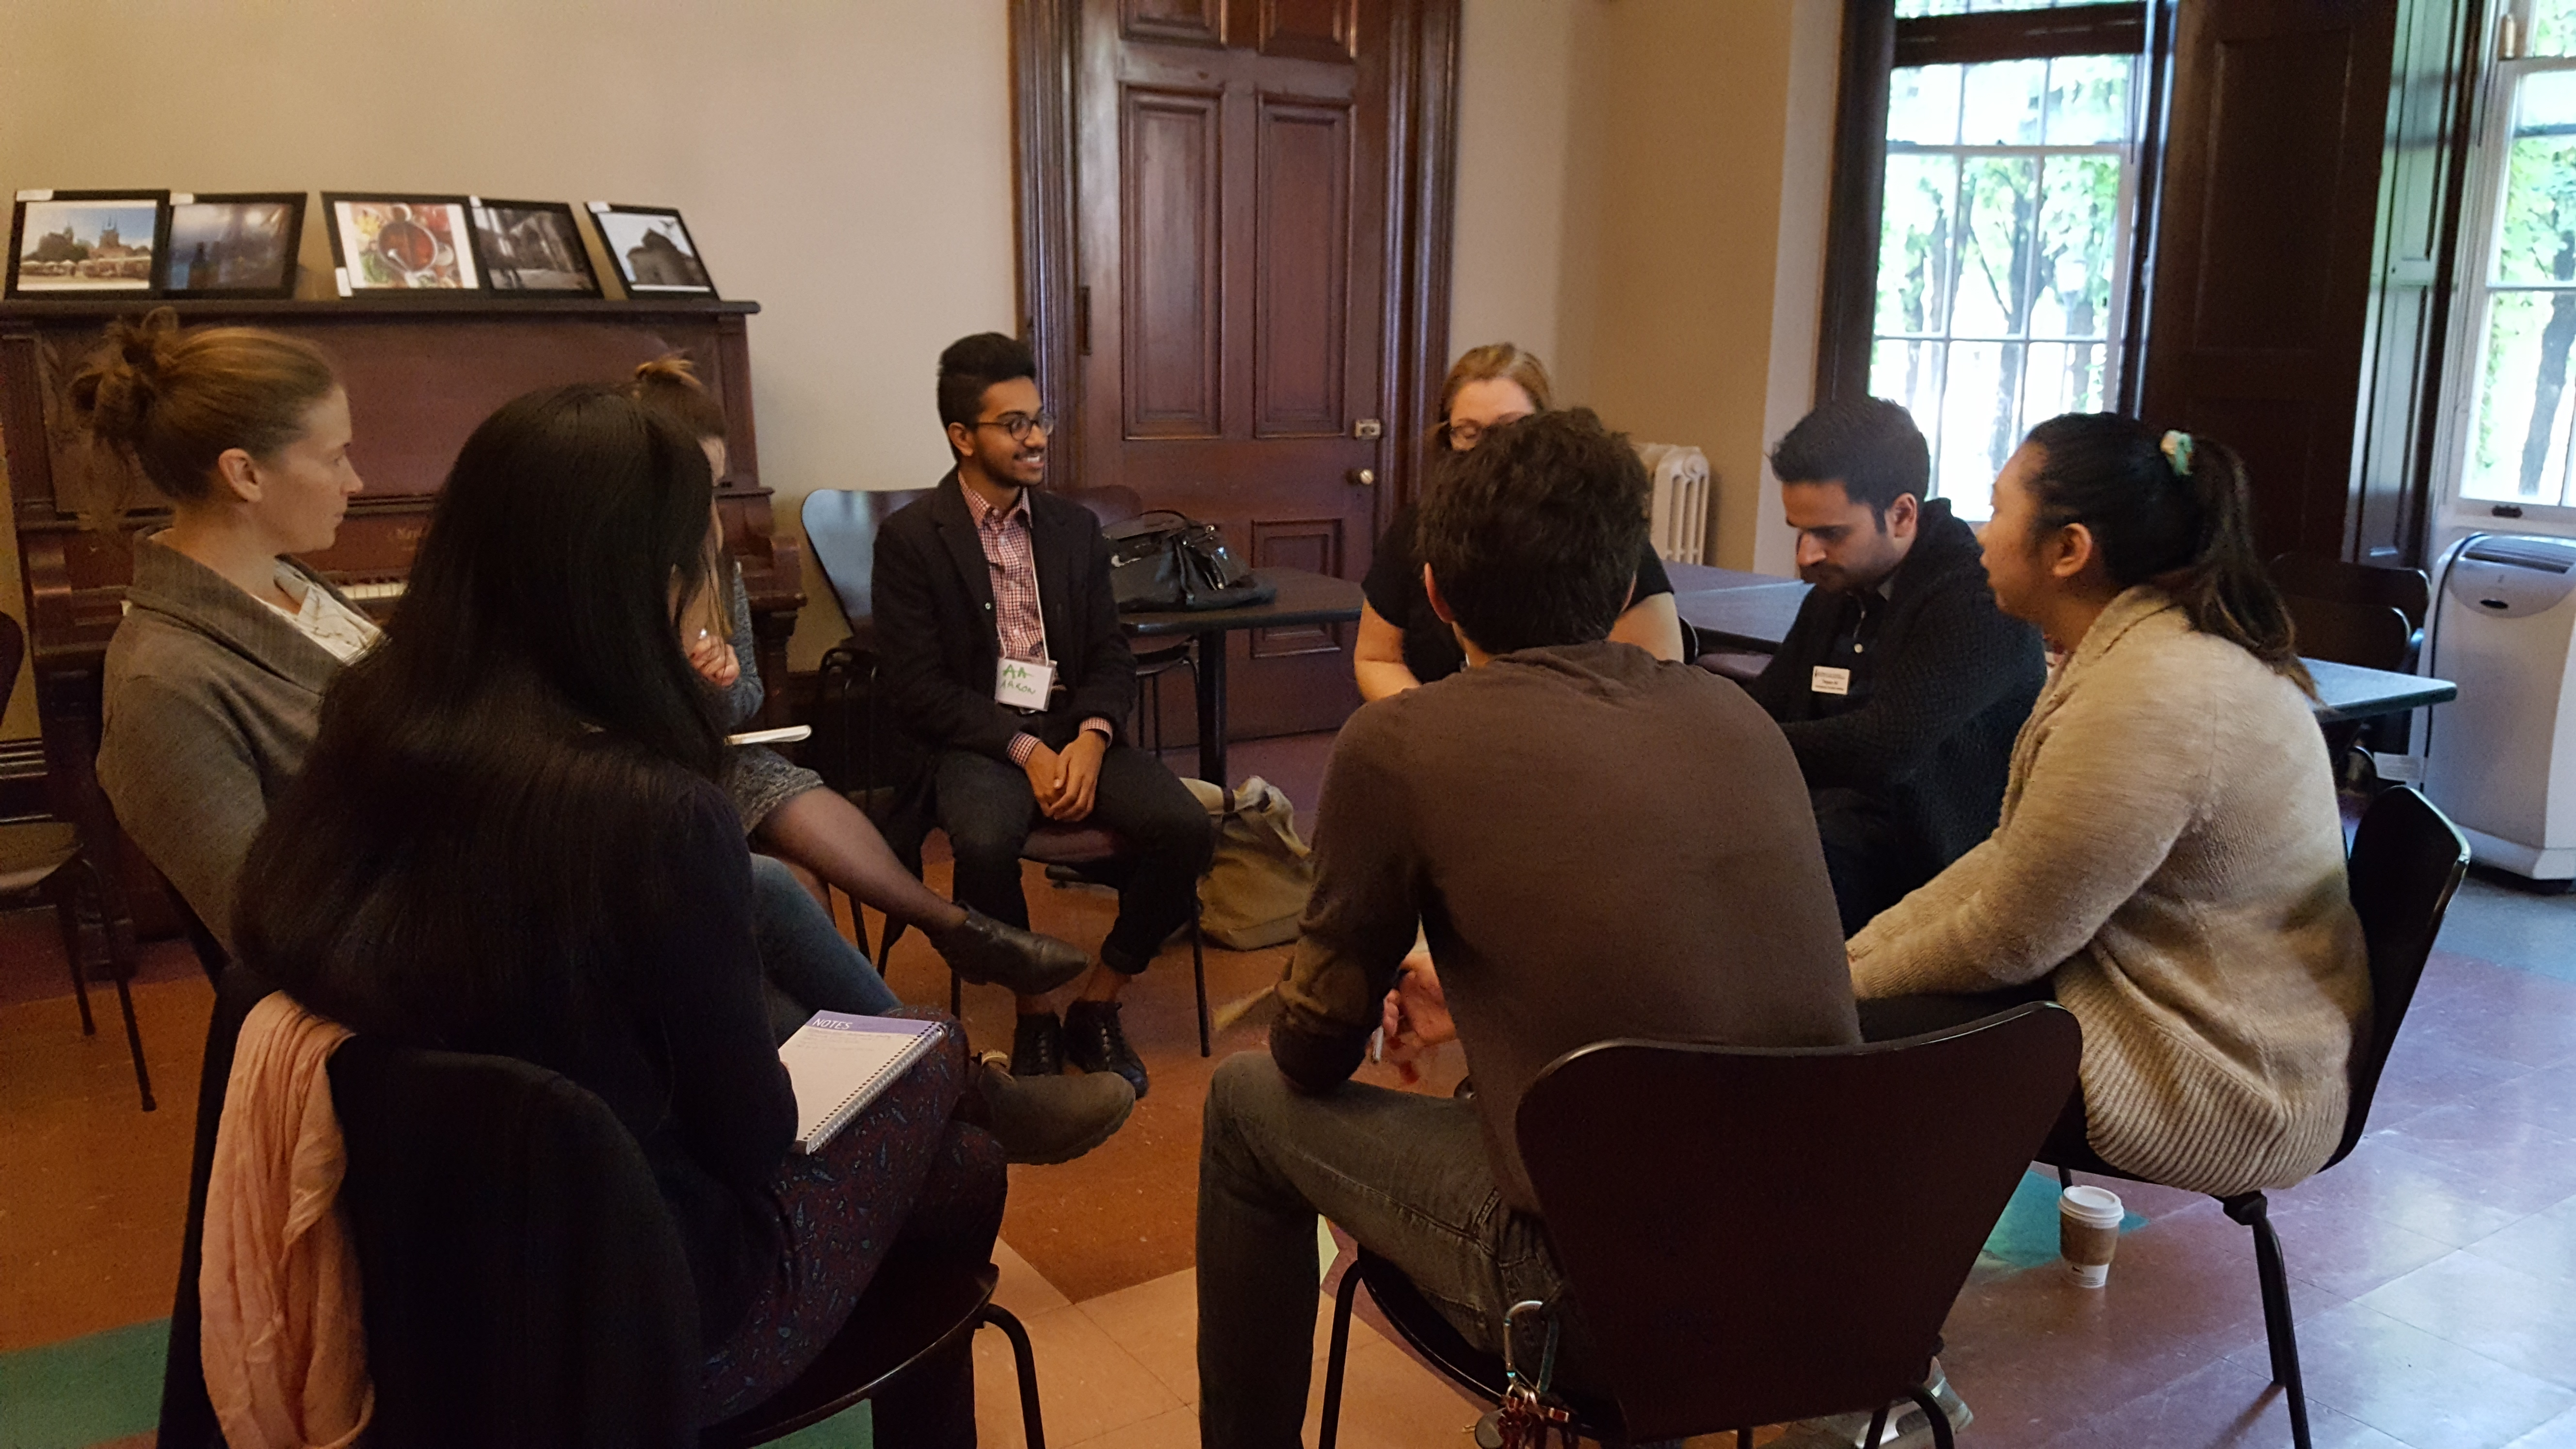 staff and students seated in a circle engaged in discussion